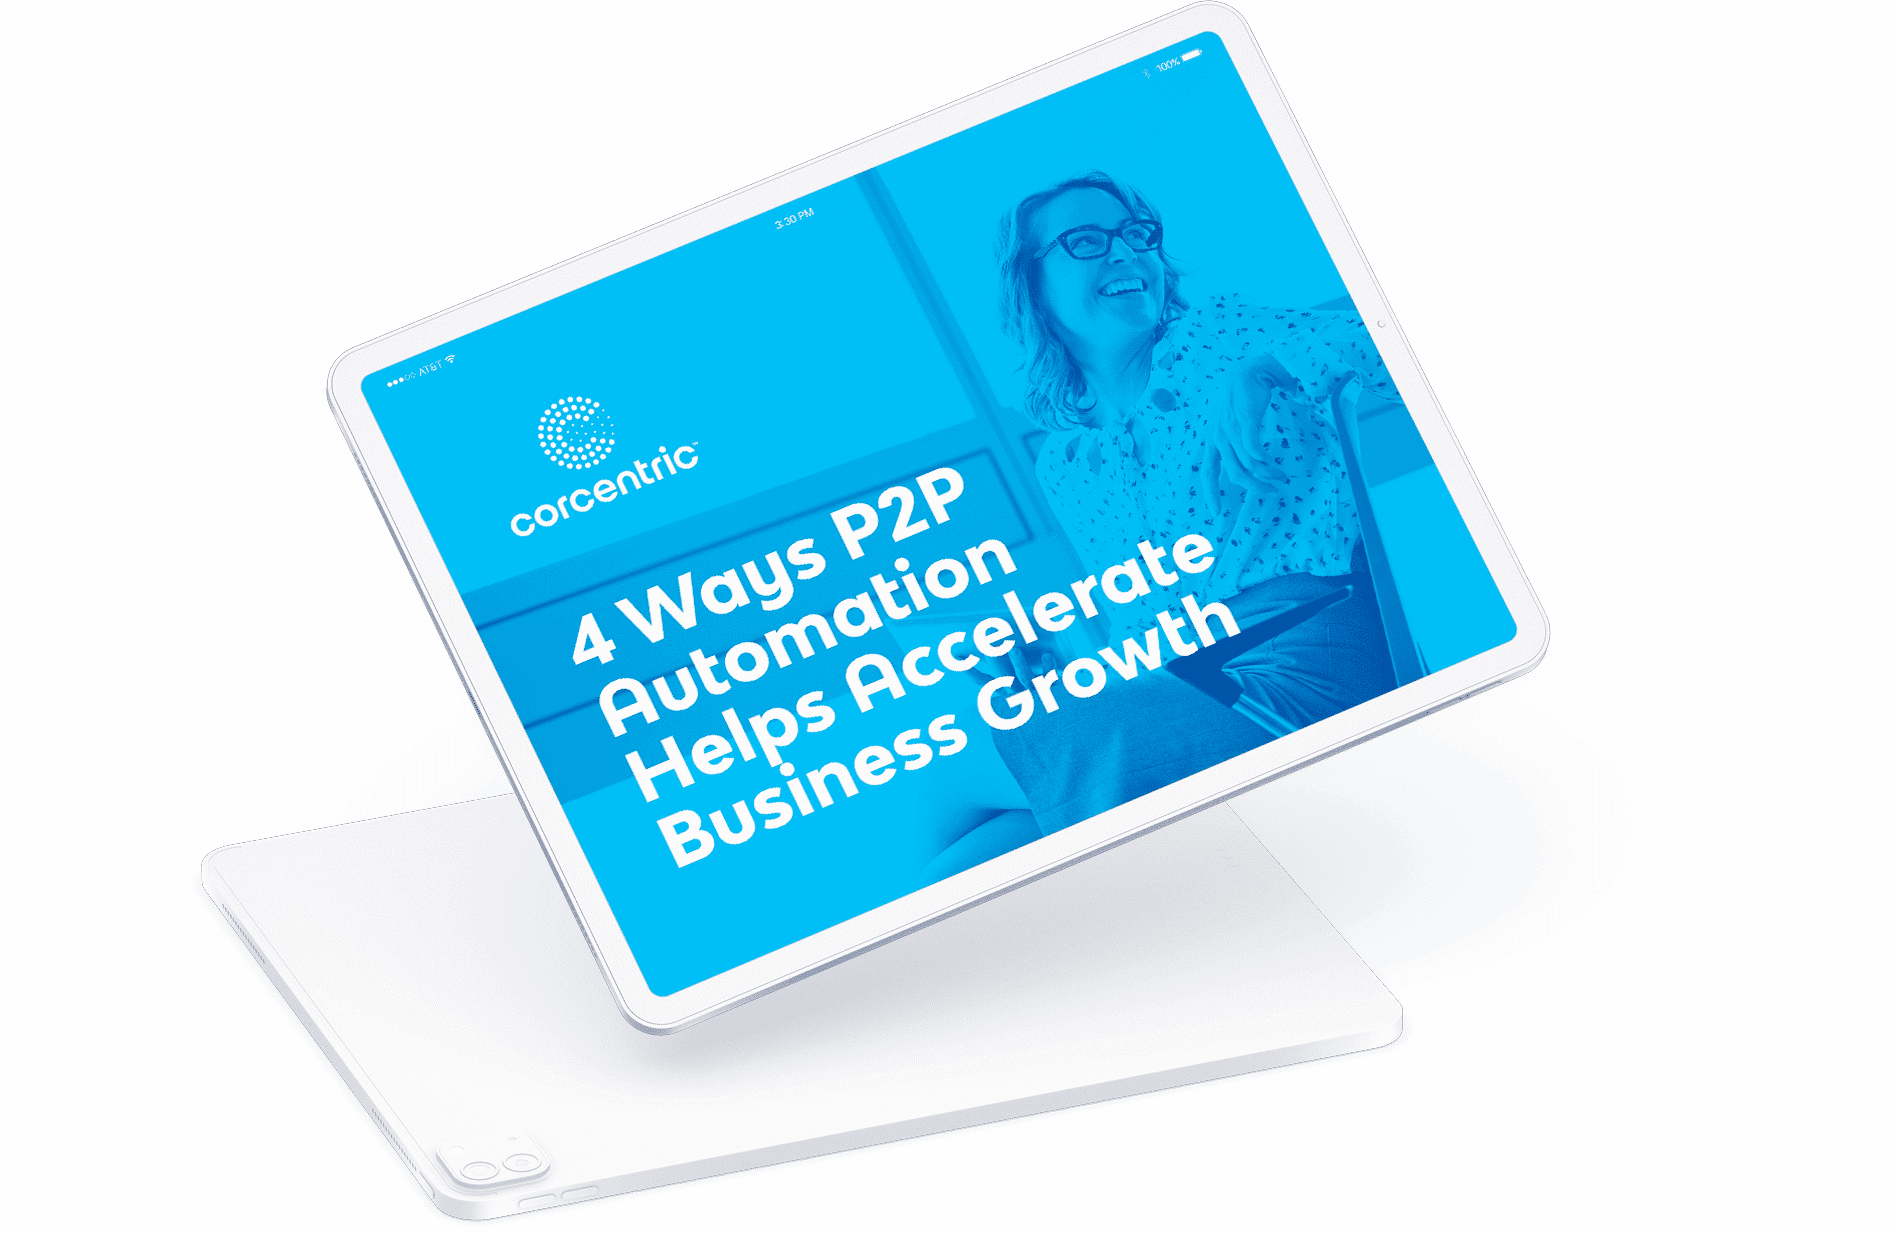 webinar-4-ways-p2p-automation-helps-accelerate-business-growth-asset